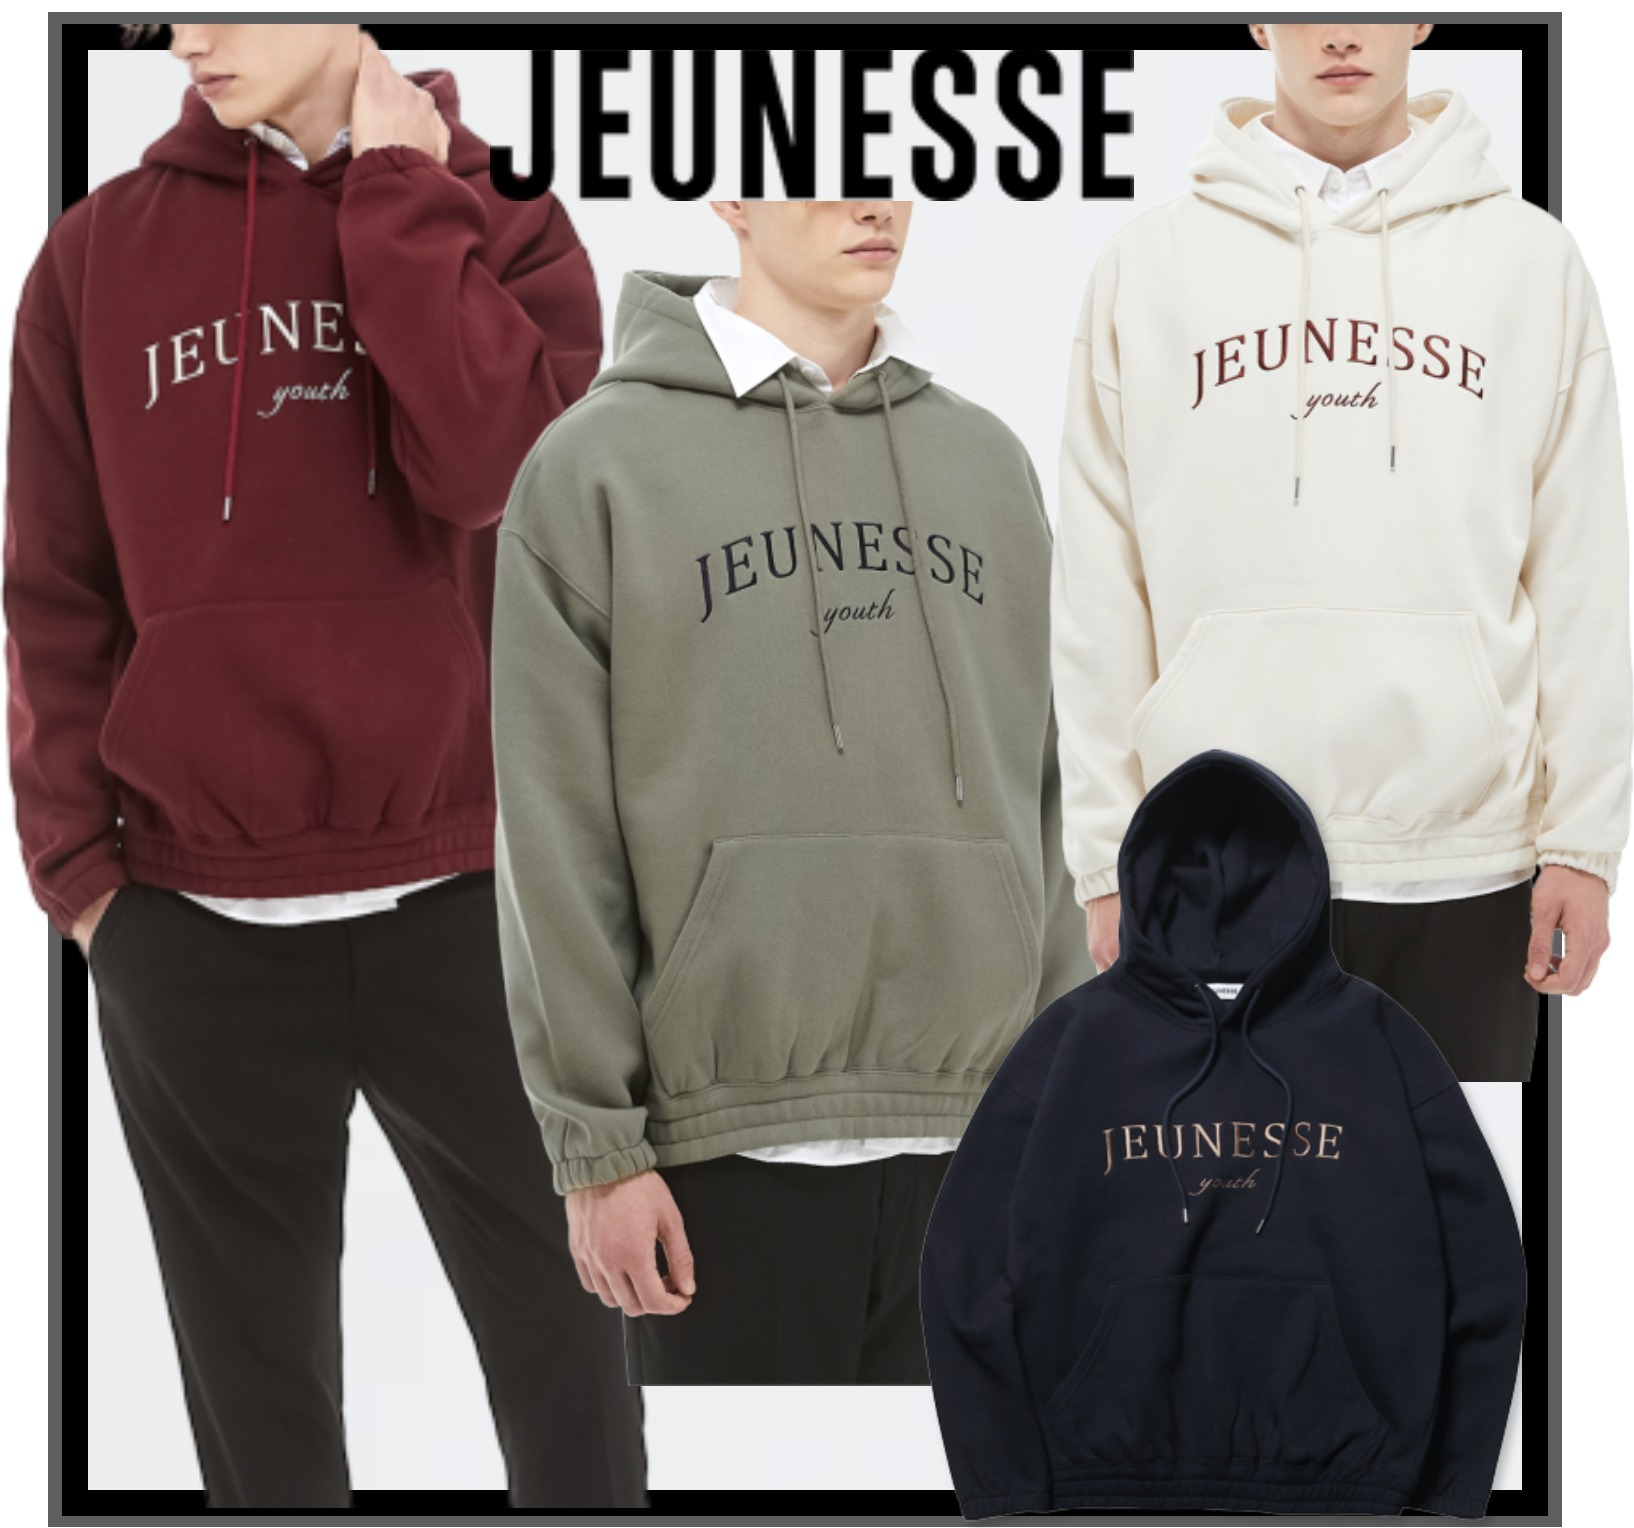 shop jeunesse clothing